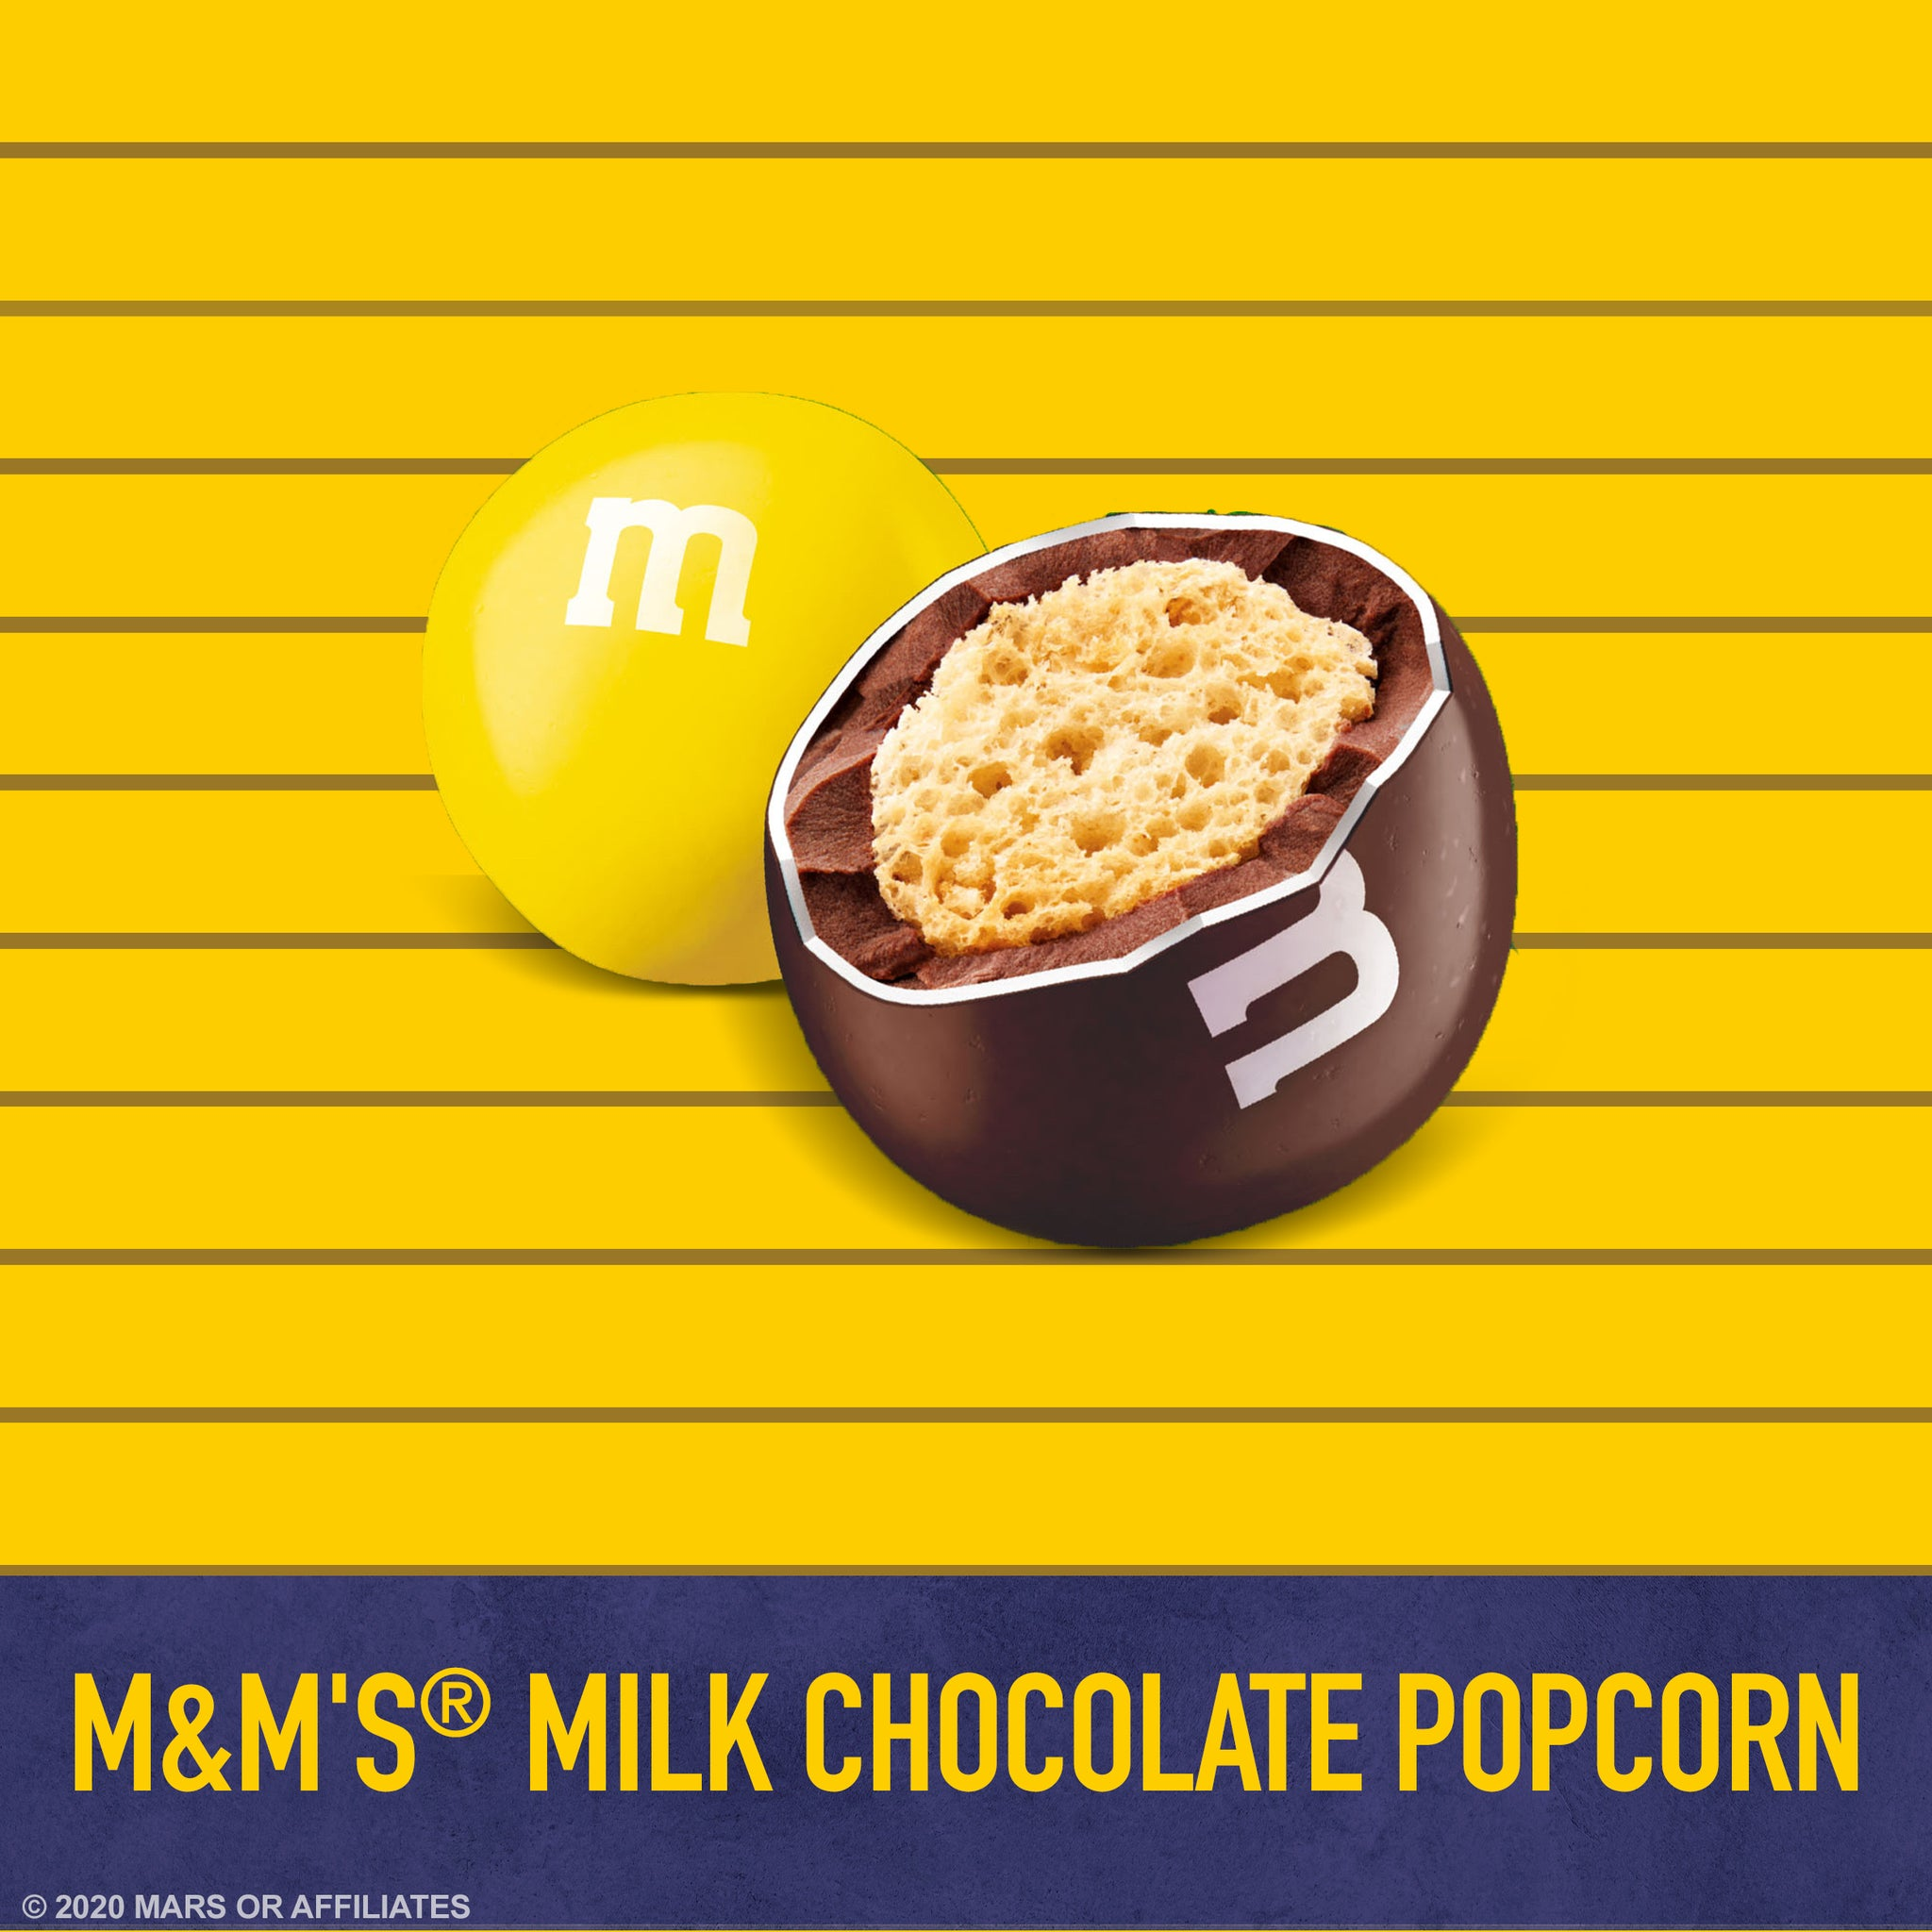 M&M'S Milk Chocolate Popcorn Candy, 7.44oz